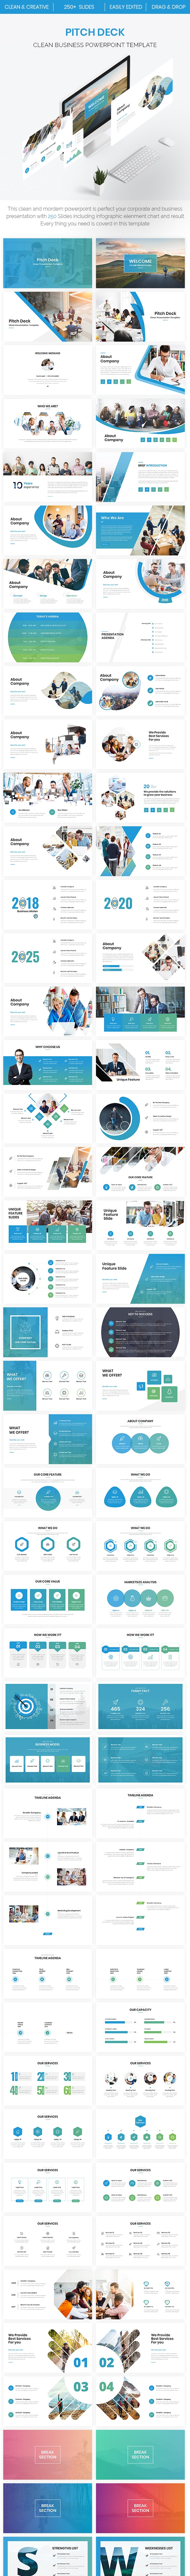 Pitch Deck - CLean Business Powerpoint Template 2019 - Business PowerPoint Templates